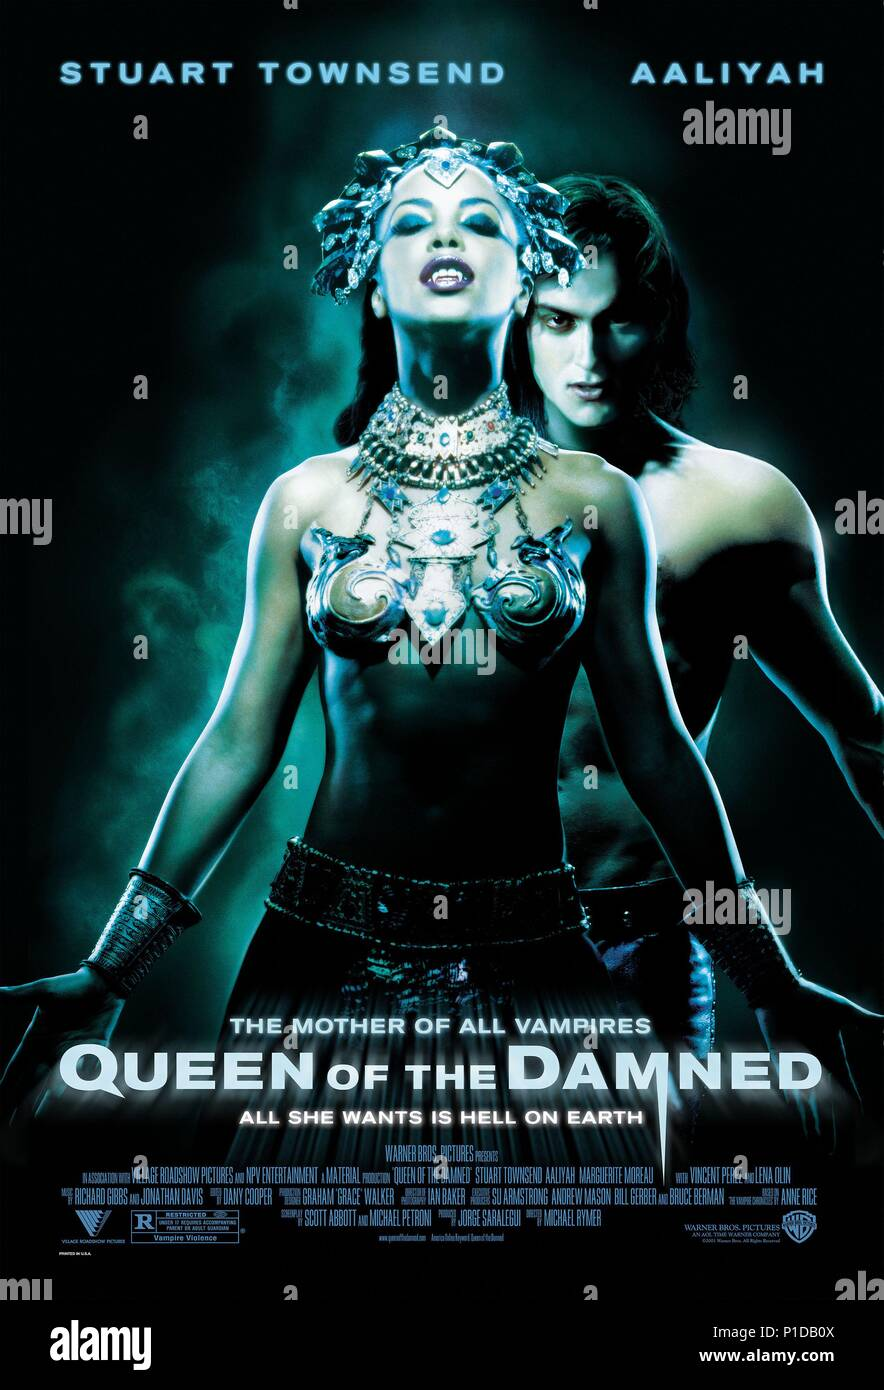 Original Film Title: QUEEN OF THE DAMNED.  English Title: QUEEN OF THE DAMNED.  Film Director: MICHAEL RYMER.  Year: 2002. Credit: WARNER BROS. PICTURES / Album - Stock Image